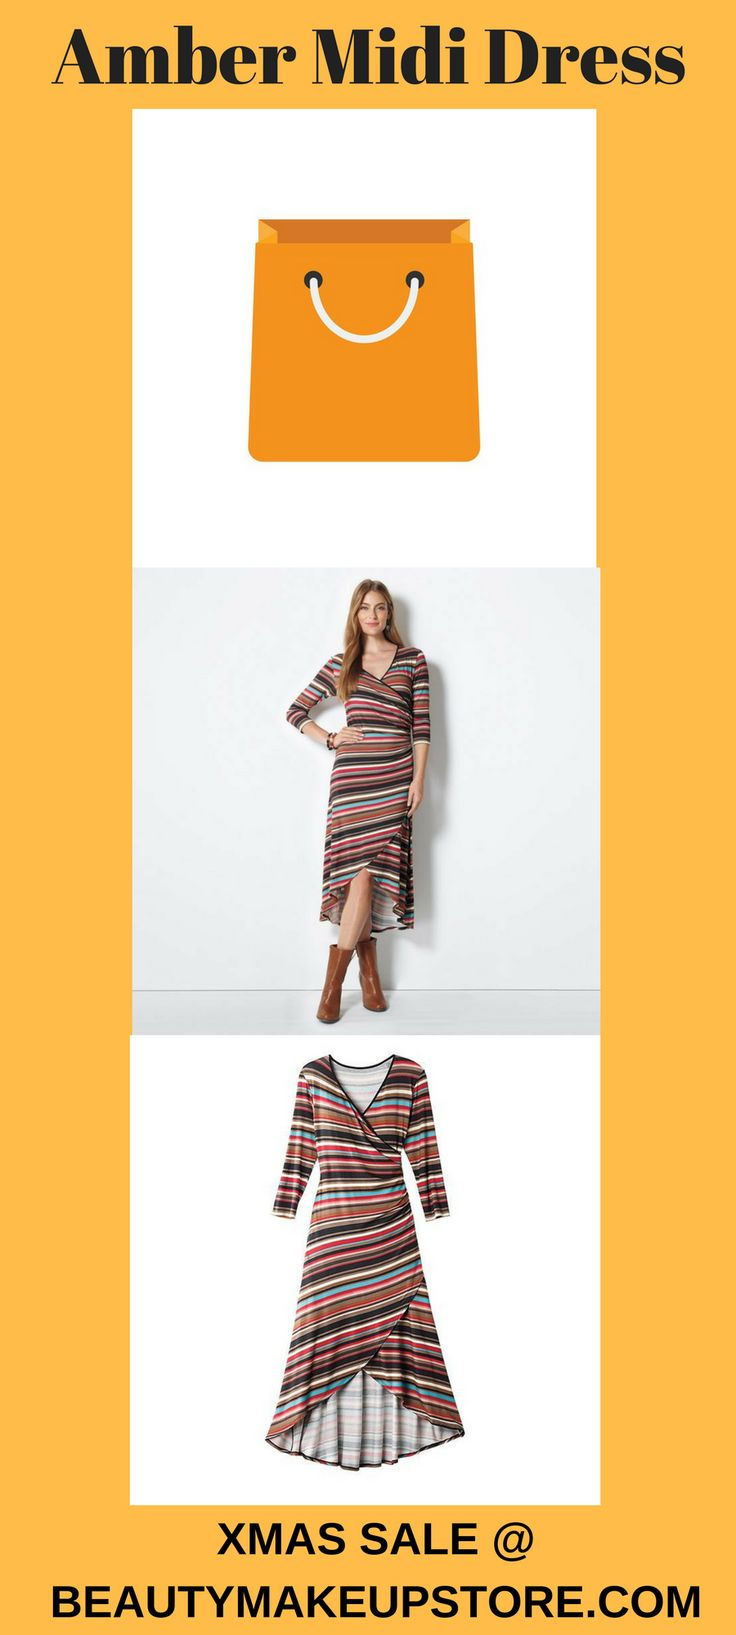 Amber midi dress #dressforsale #buydress #buyclothingonline #shopdresses #fashion #WomenDress #Womendresses  dress for sale | dress for sale for teens | dress for sale formal | dress for sale casual | dress for sale cheap | dresses for sale | Dress For sale |